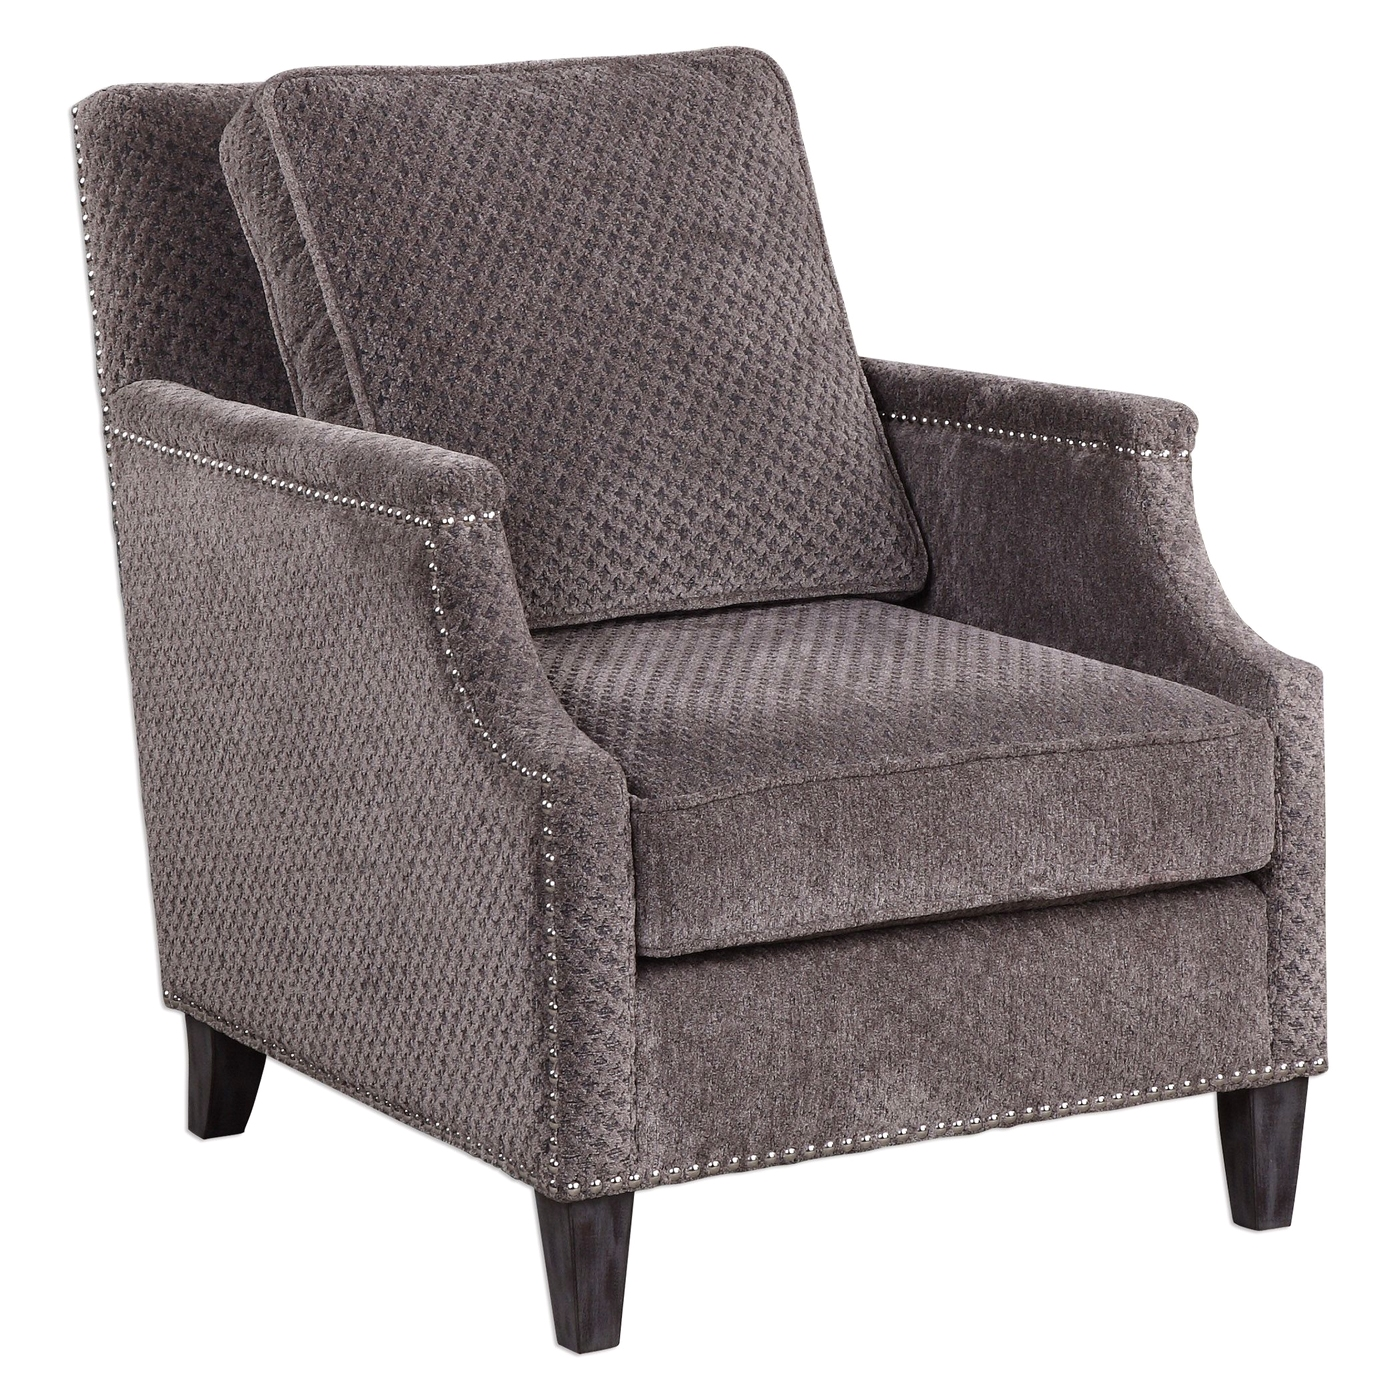 Gray Chair Cushions Dallen Curved Accent Armchair With Pewter Gray Chenille